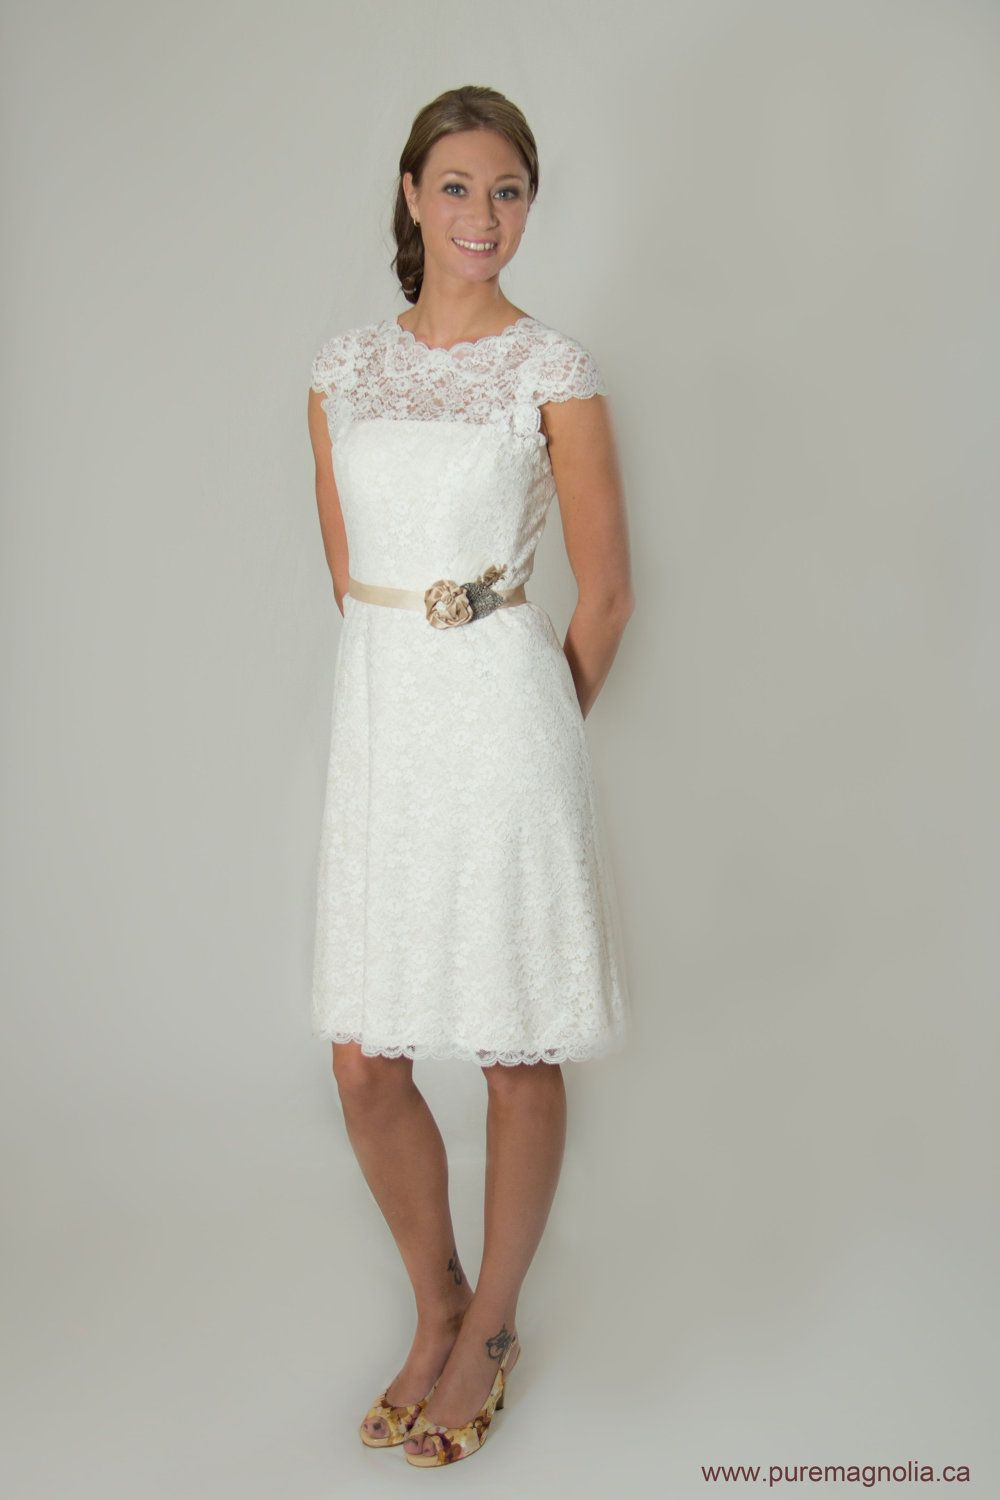 Rehearsal Dinner Lace Short Wedding Dress Cap Sleeves Low Back White Cotton Plus Size Custom Made